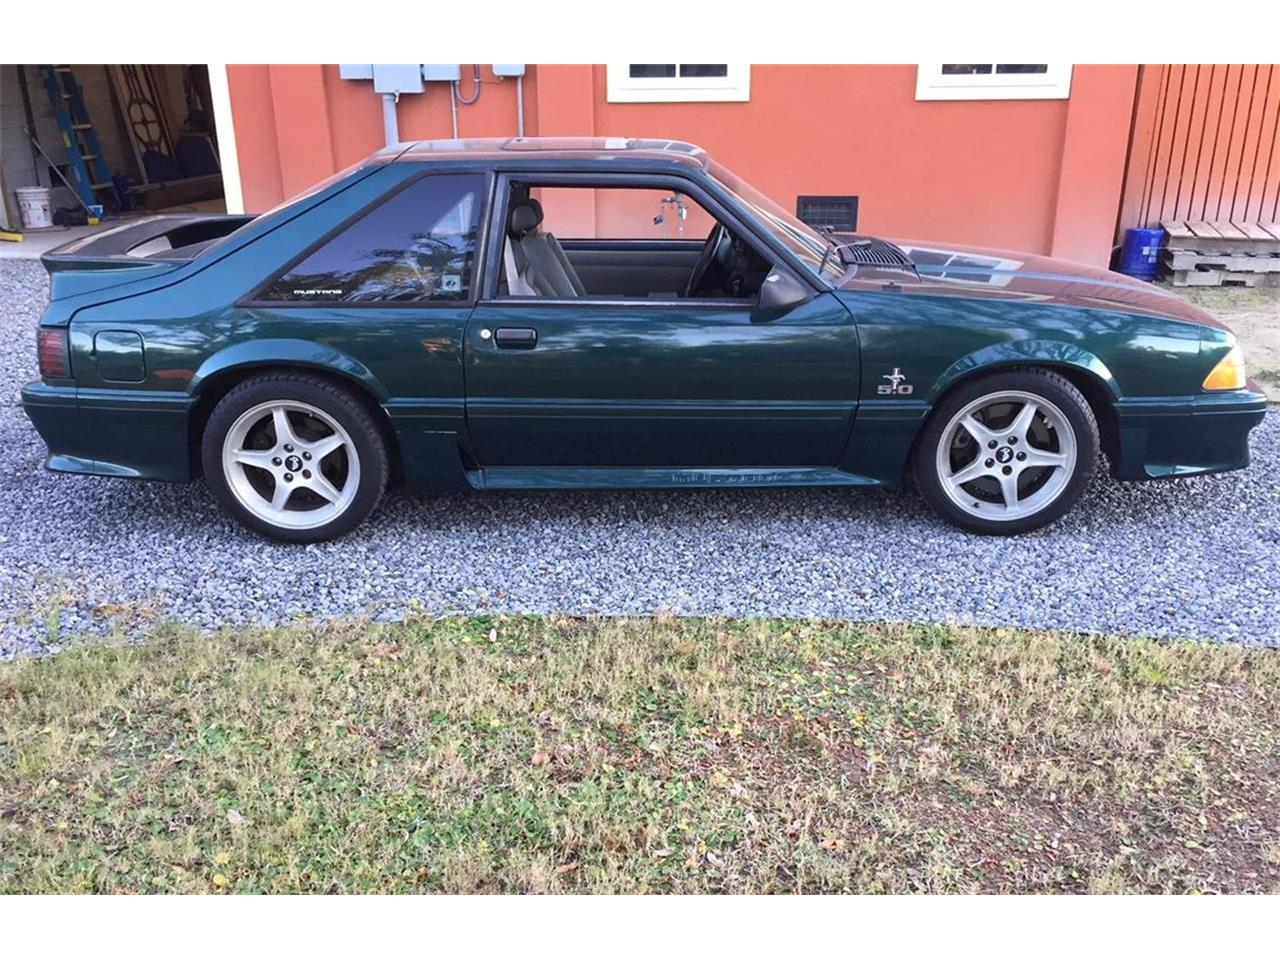 91 Mustang Gt >> 1991 Ford Mustang Gt For Sale Classiccars Com Cc 1158241